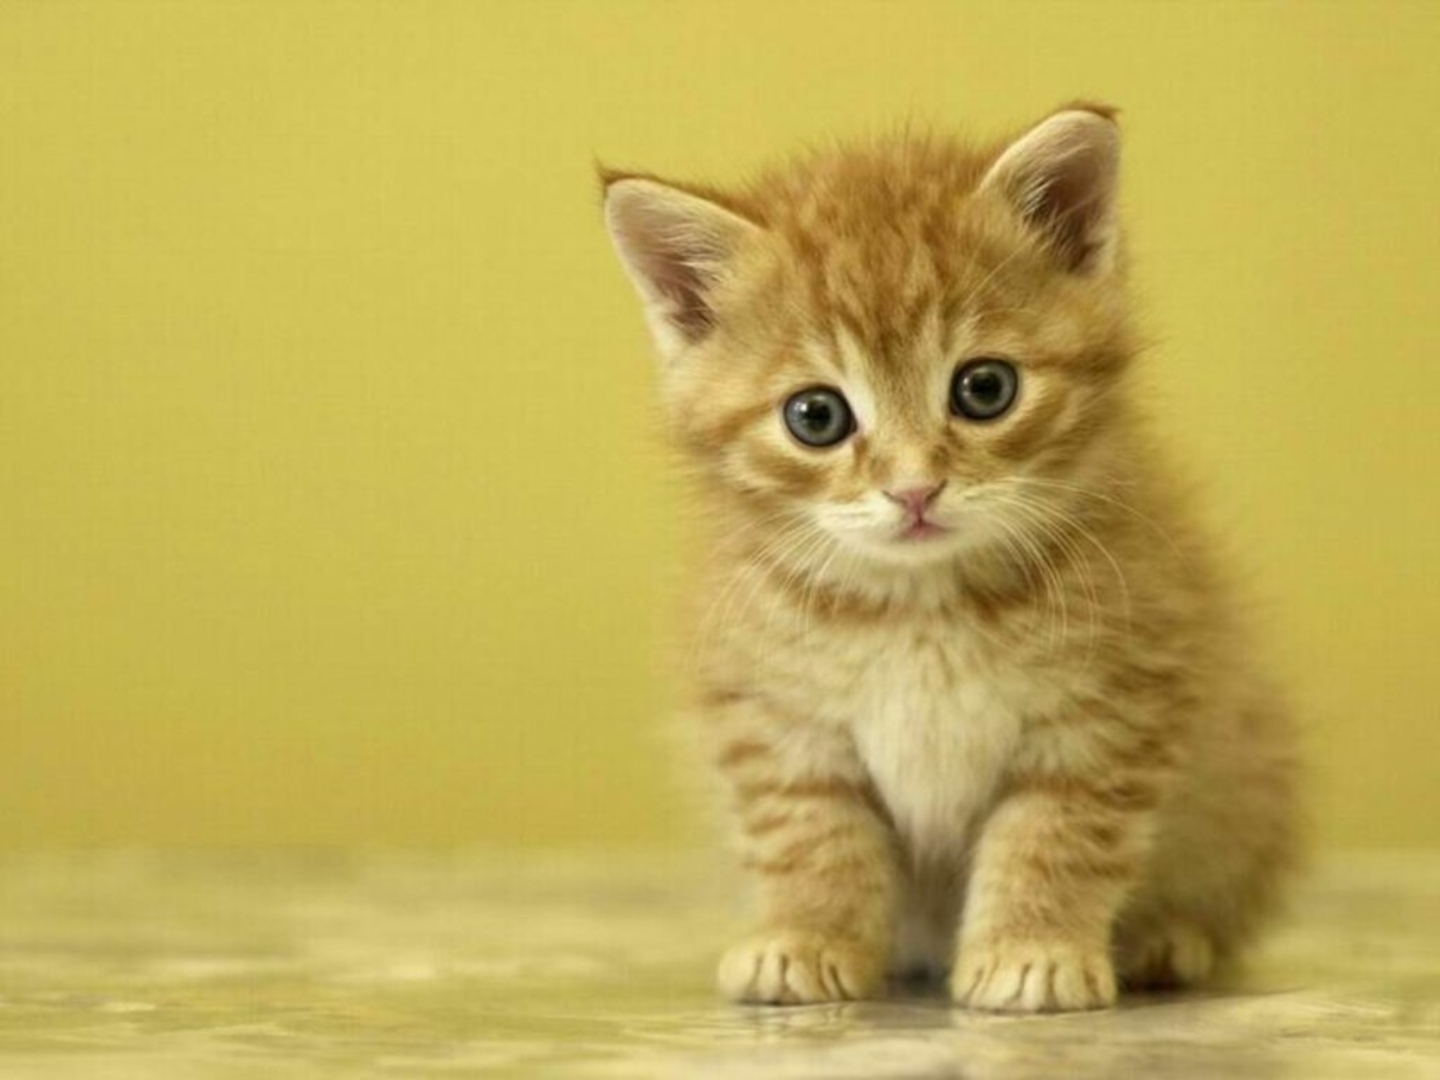 1920x1080 pixel Desktop Wallpapers Cute Kitten Wallpaper Desktop 1440x1080